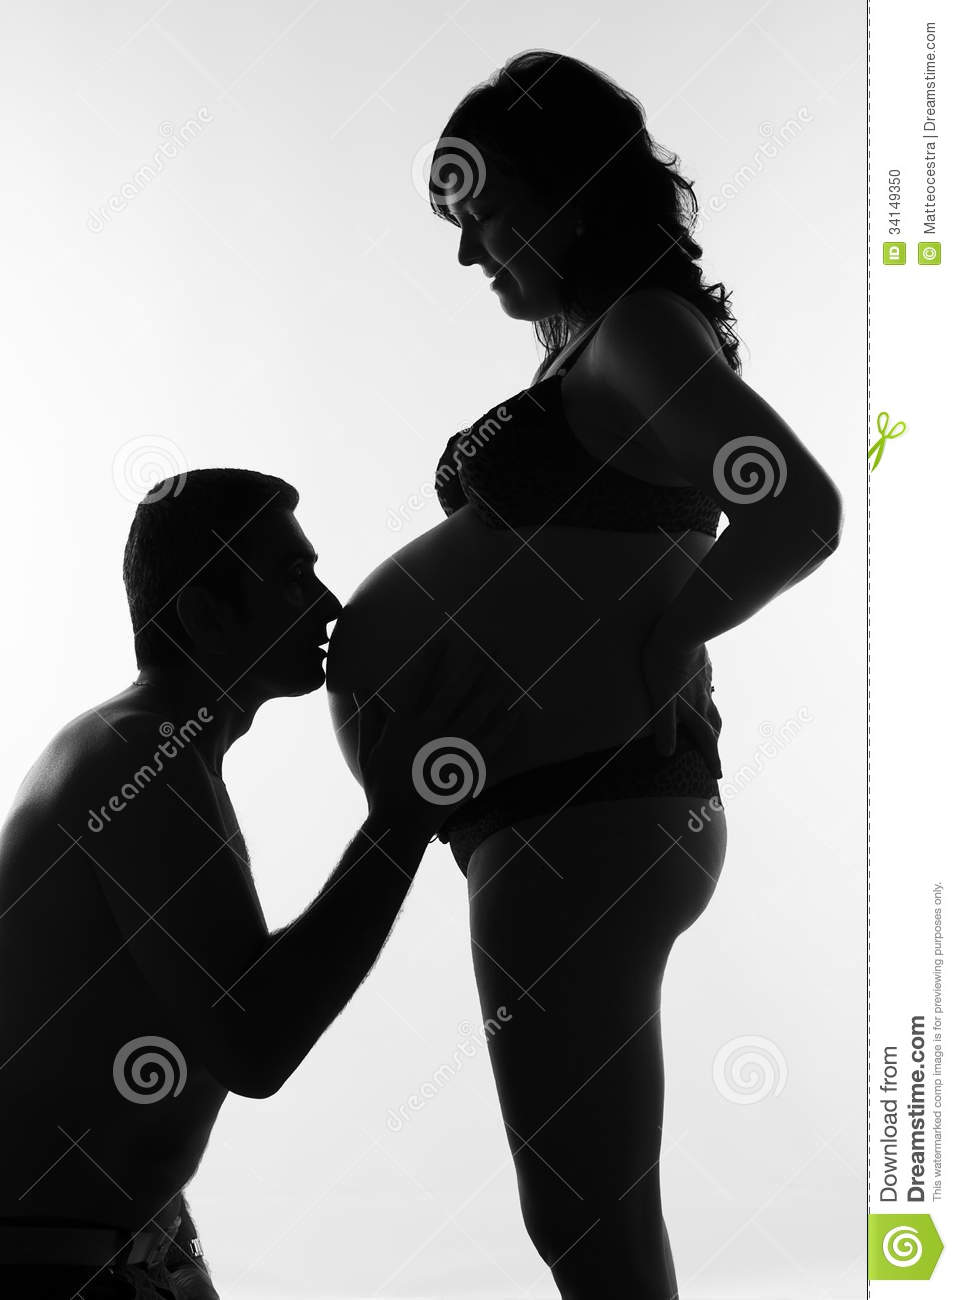 Opinion Husband and wife silhouette consider